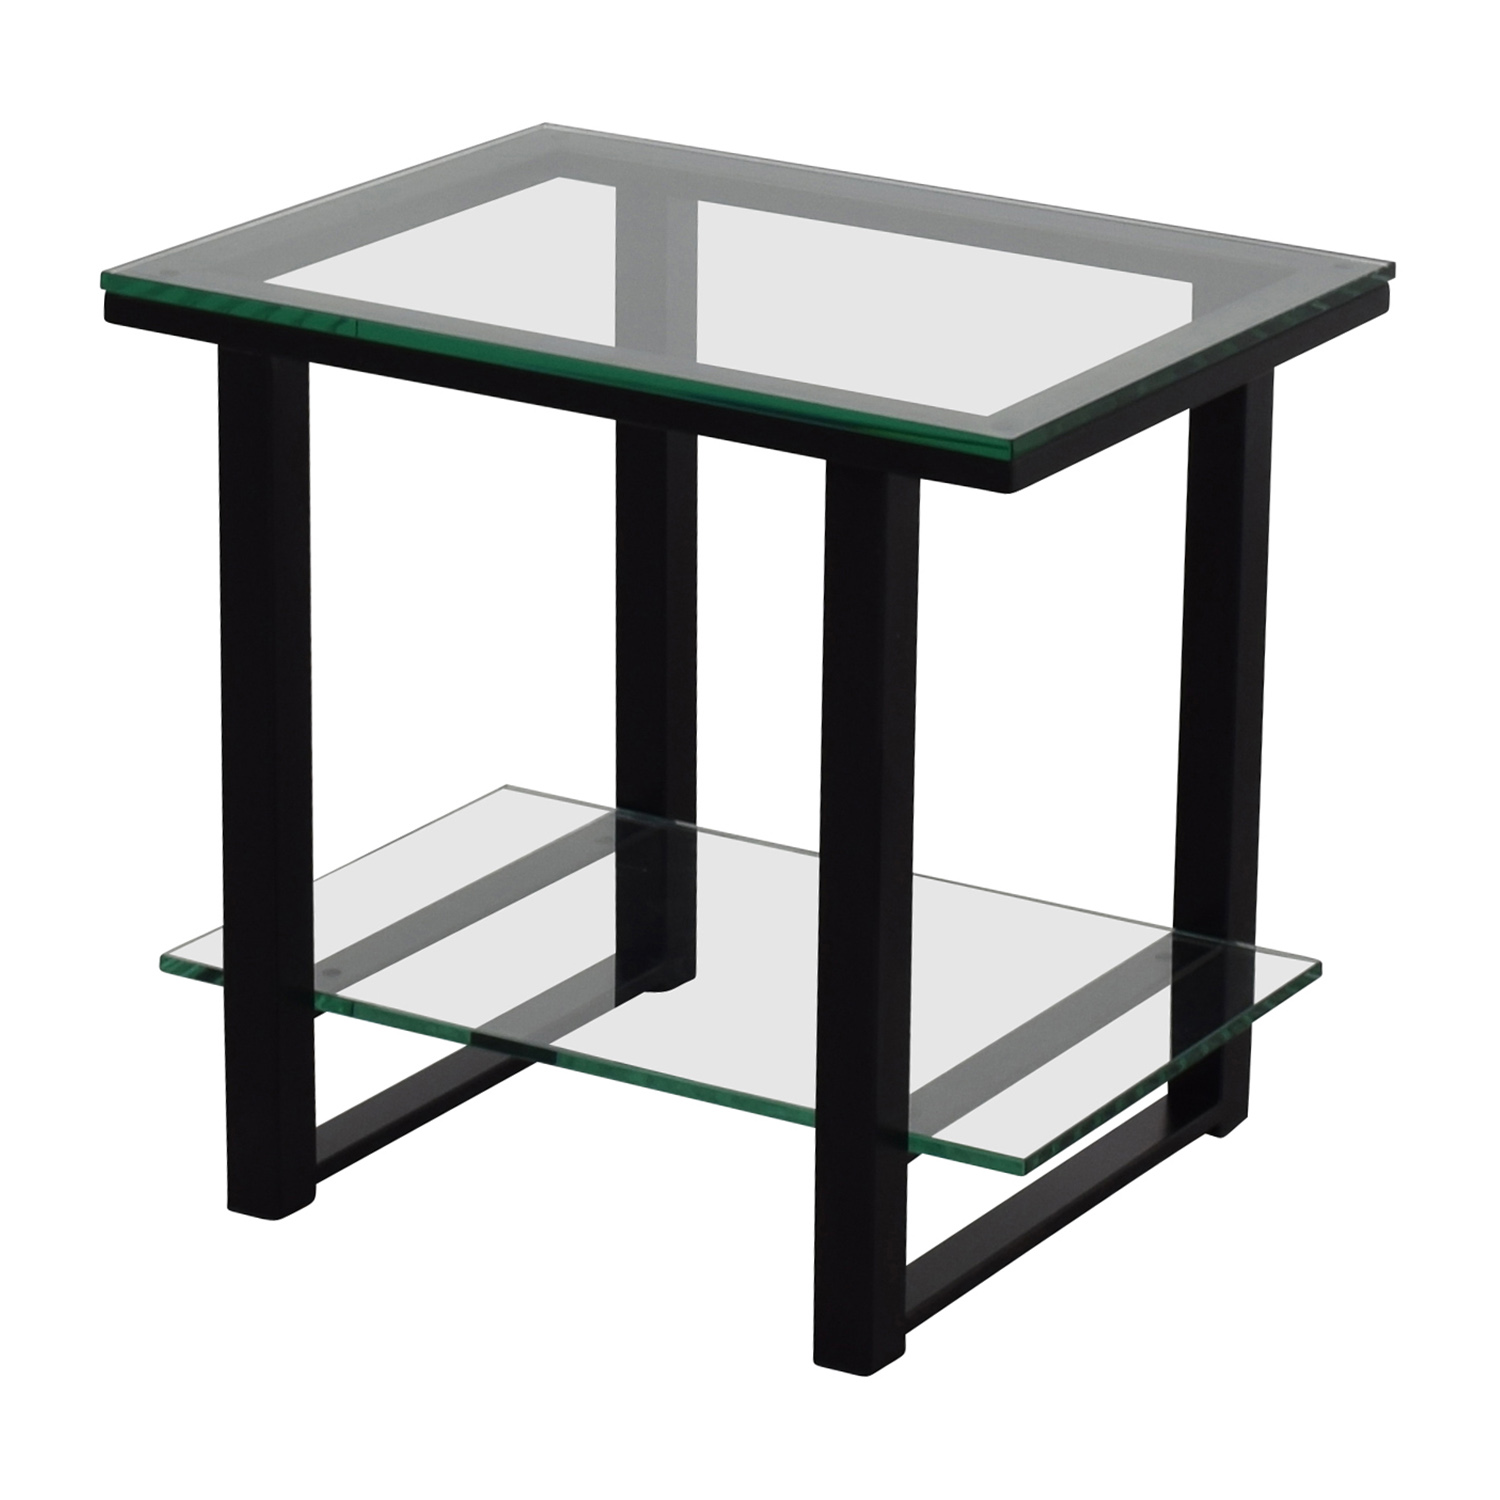 off crate and barrel barrelglass metal two shelf used side table accent with tables small teal pin legs low for living room gray coffee tall lamps bedroom solid wood end glass